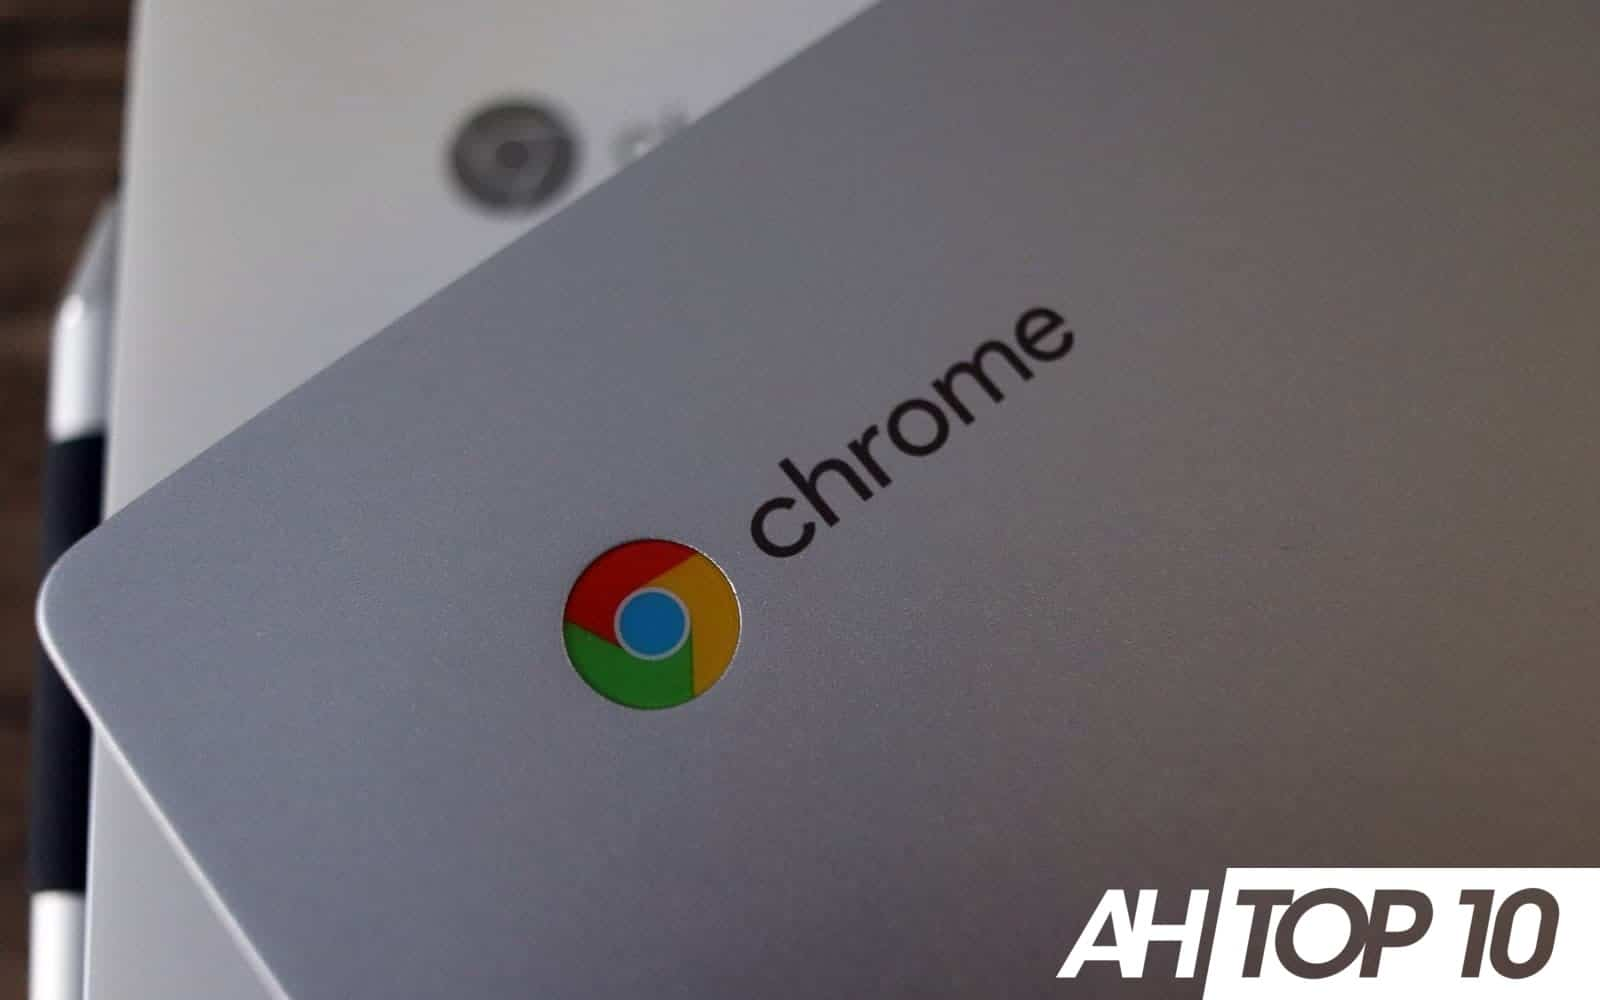 Chrome OS Top Ten Feature Image DG AH 2019